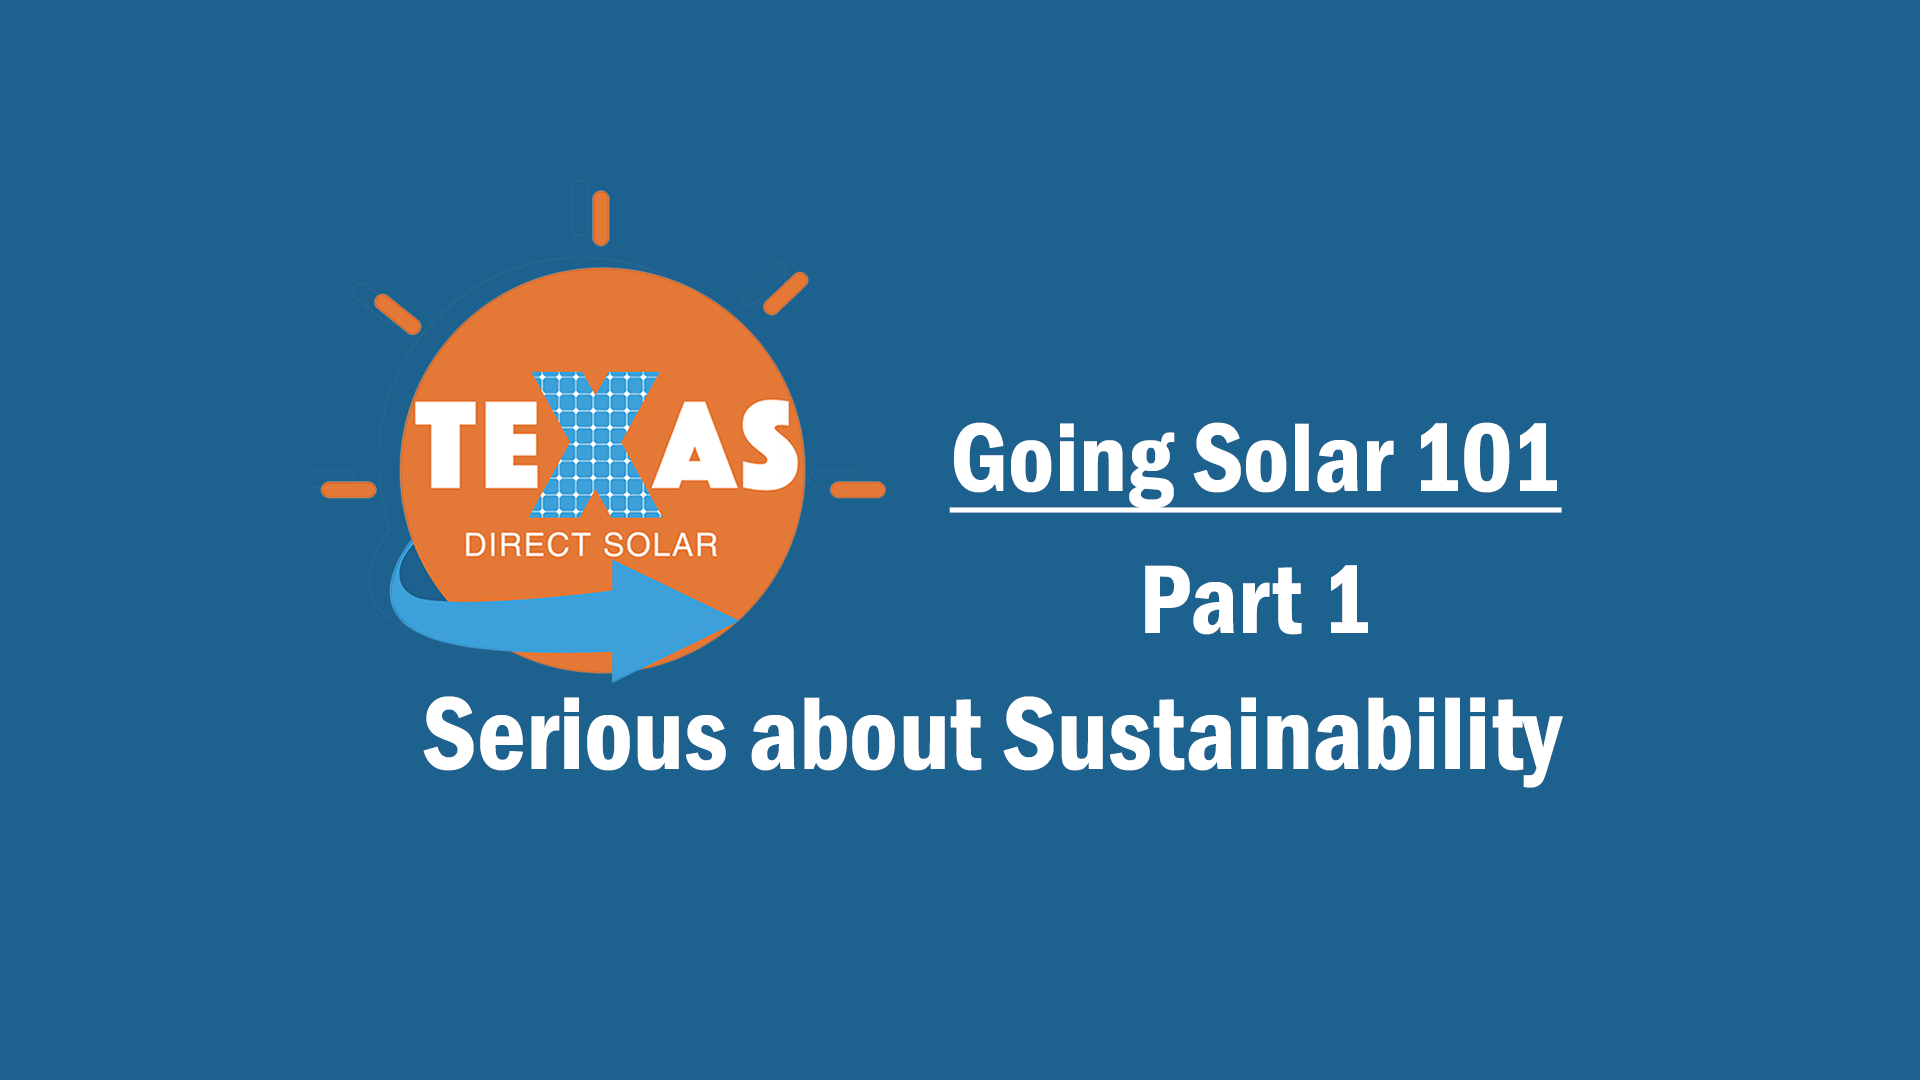 Going Solar 101-Serious About Sustainability